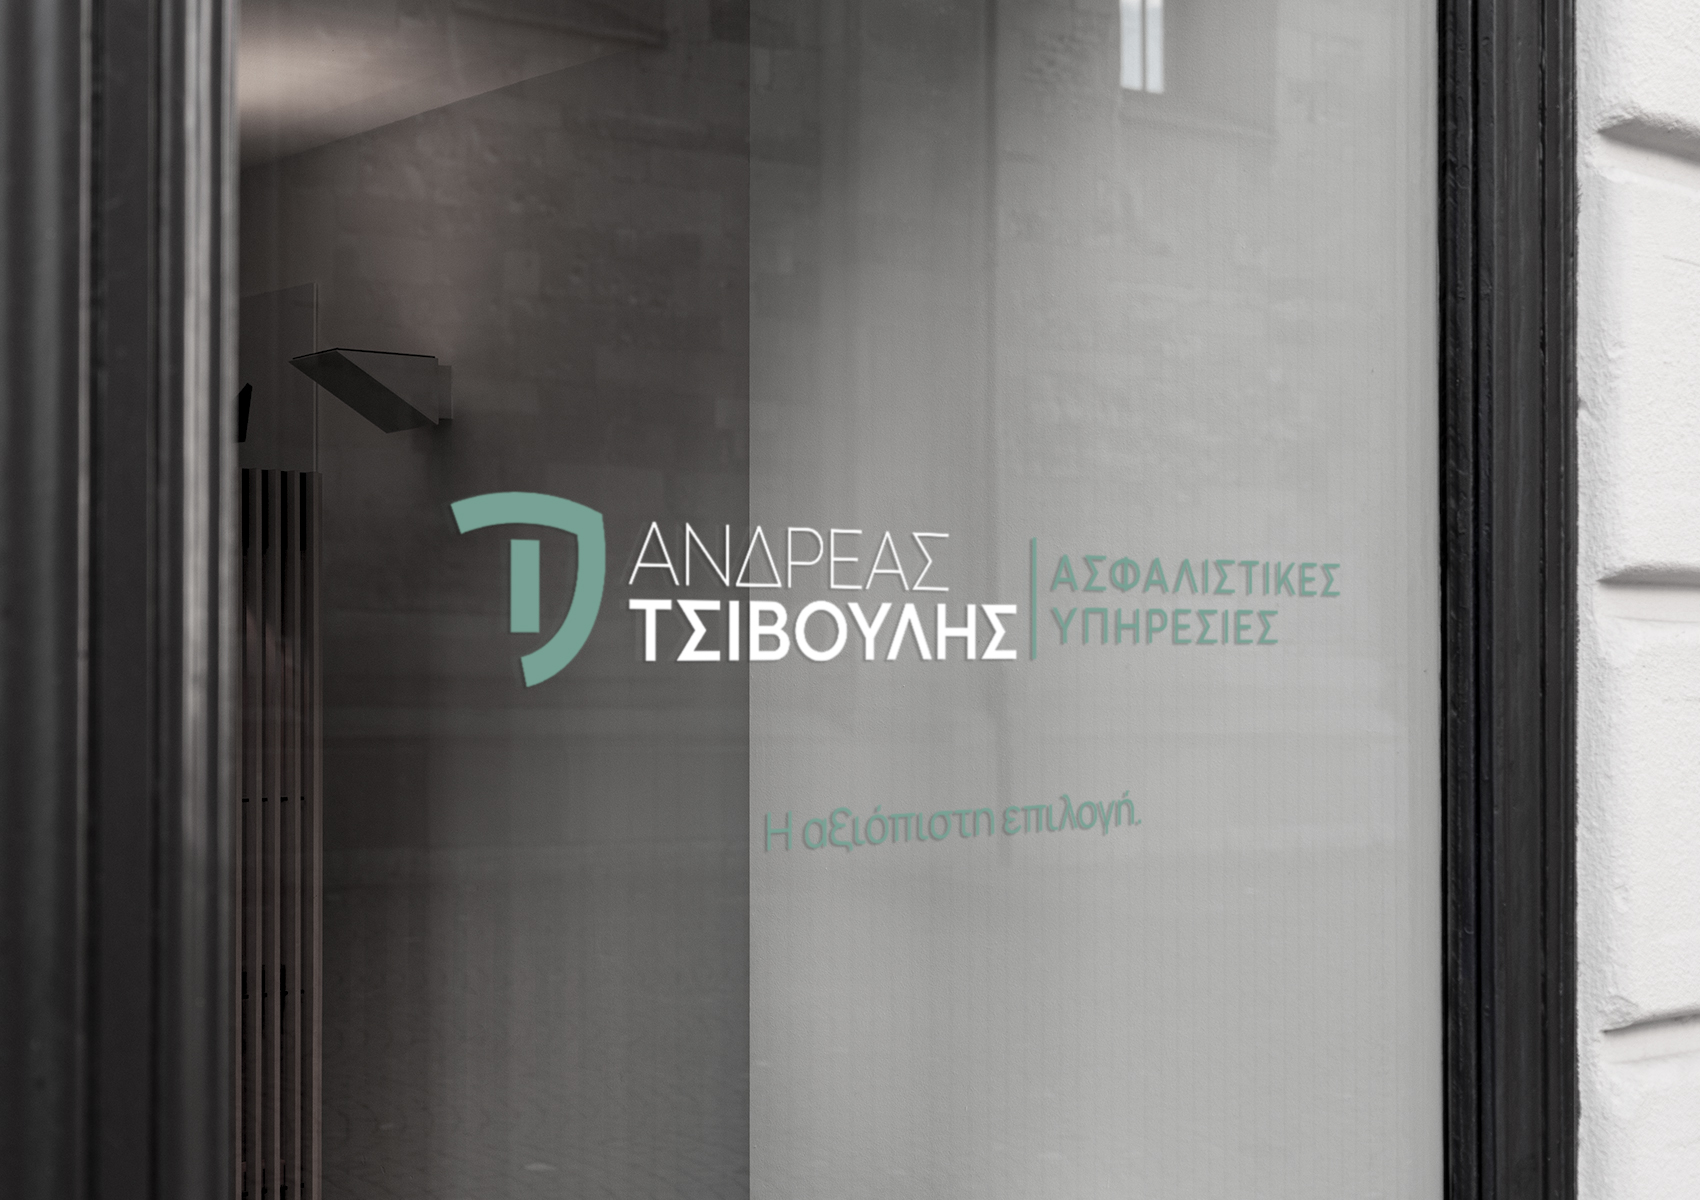 Andreas Tsivoulis window sign 1700x1200 by xhristakis